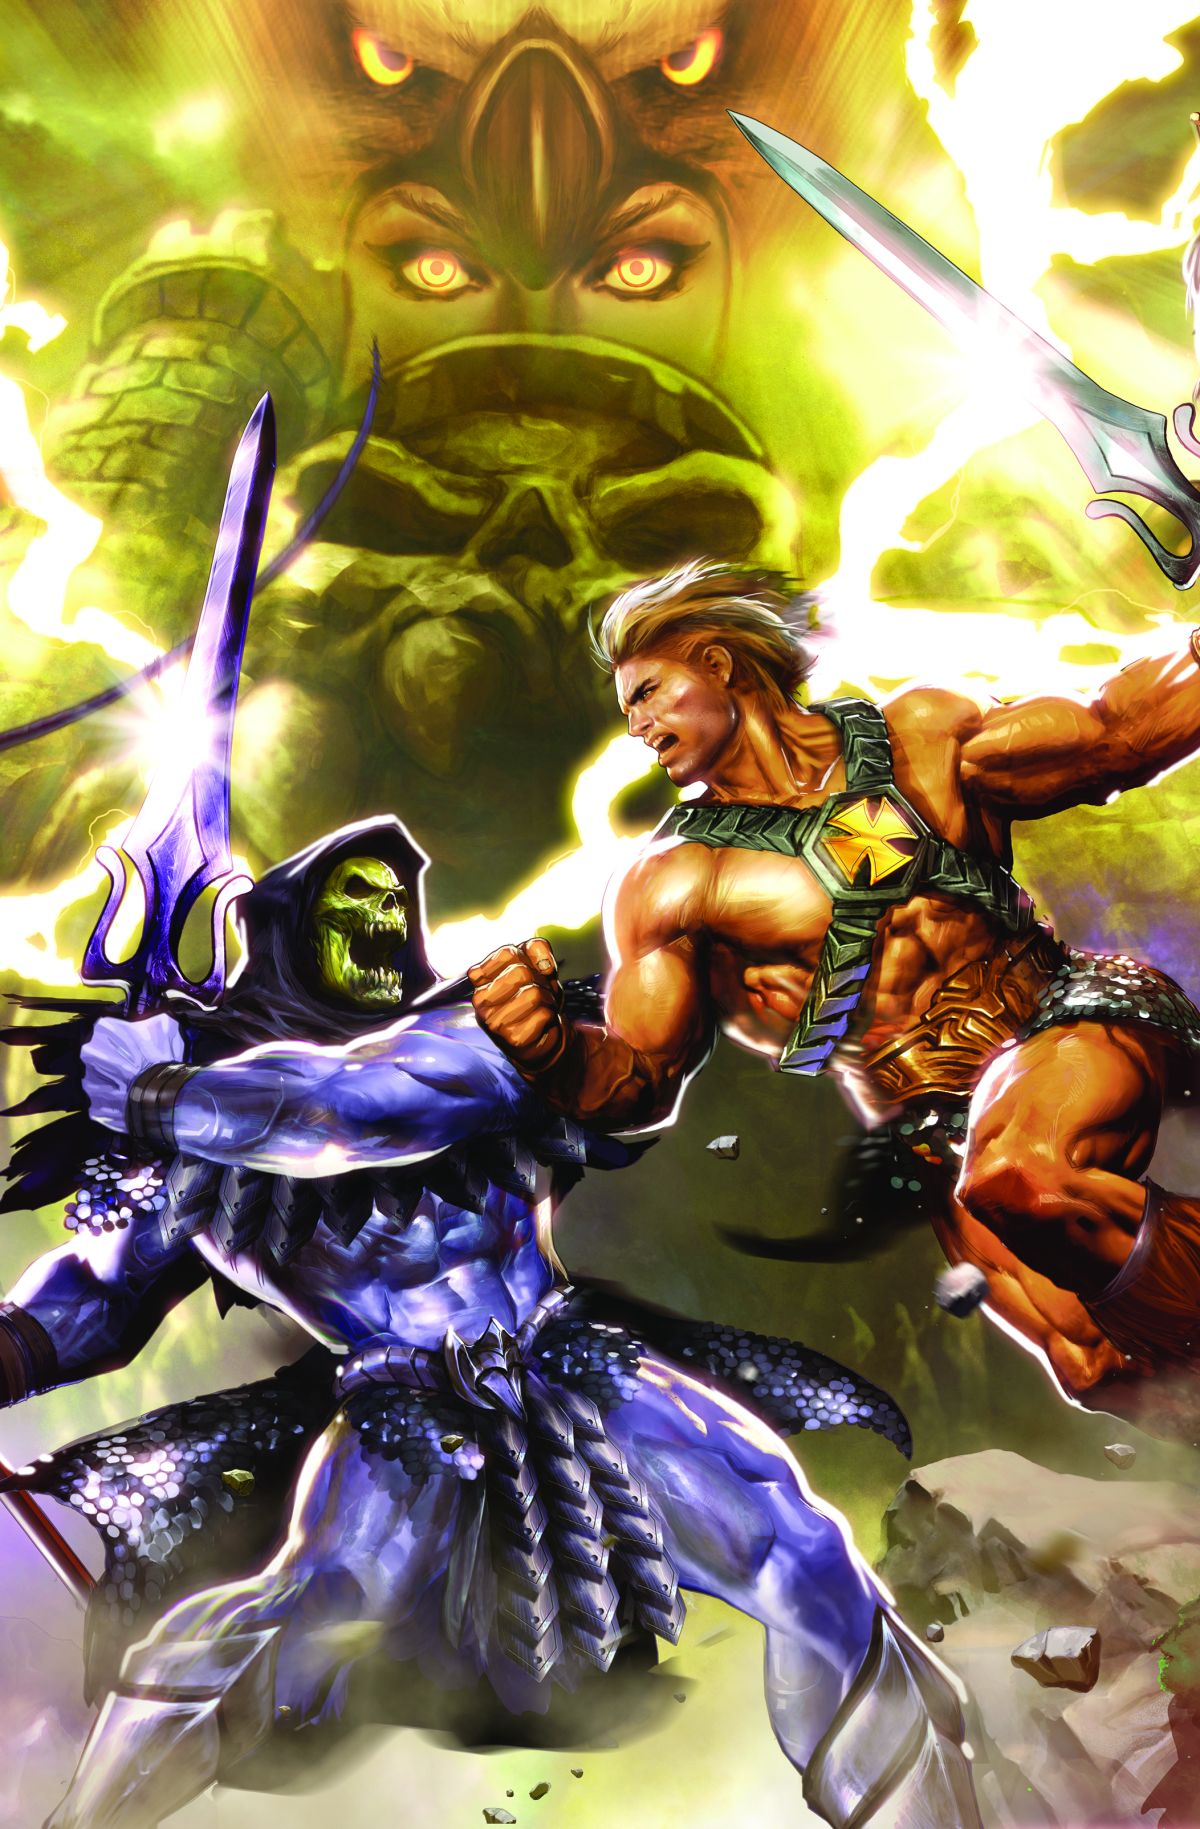 HE-MAN AND THE MASTERS OF THE UNIVERSE OMNIBUS HC